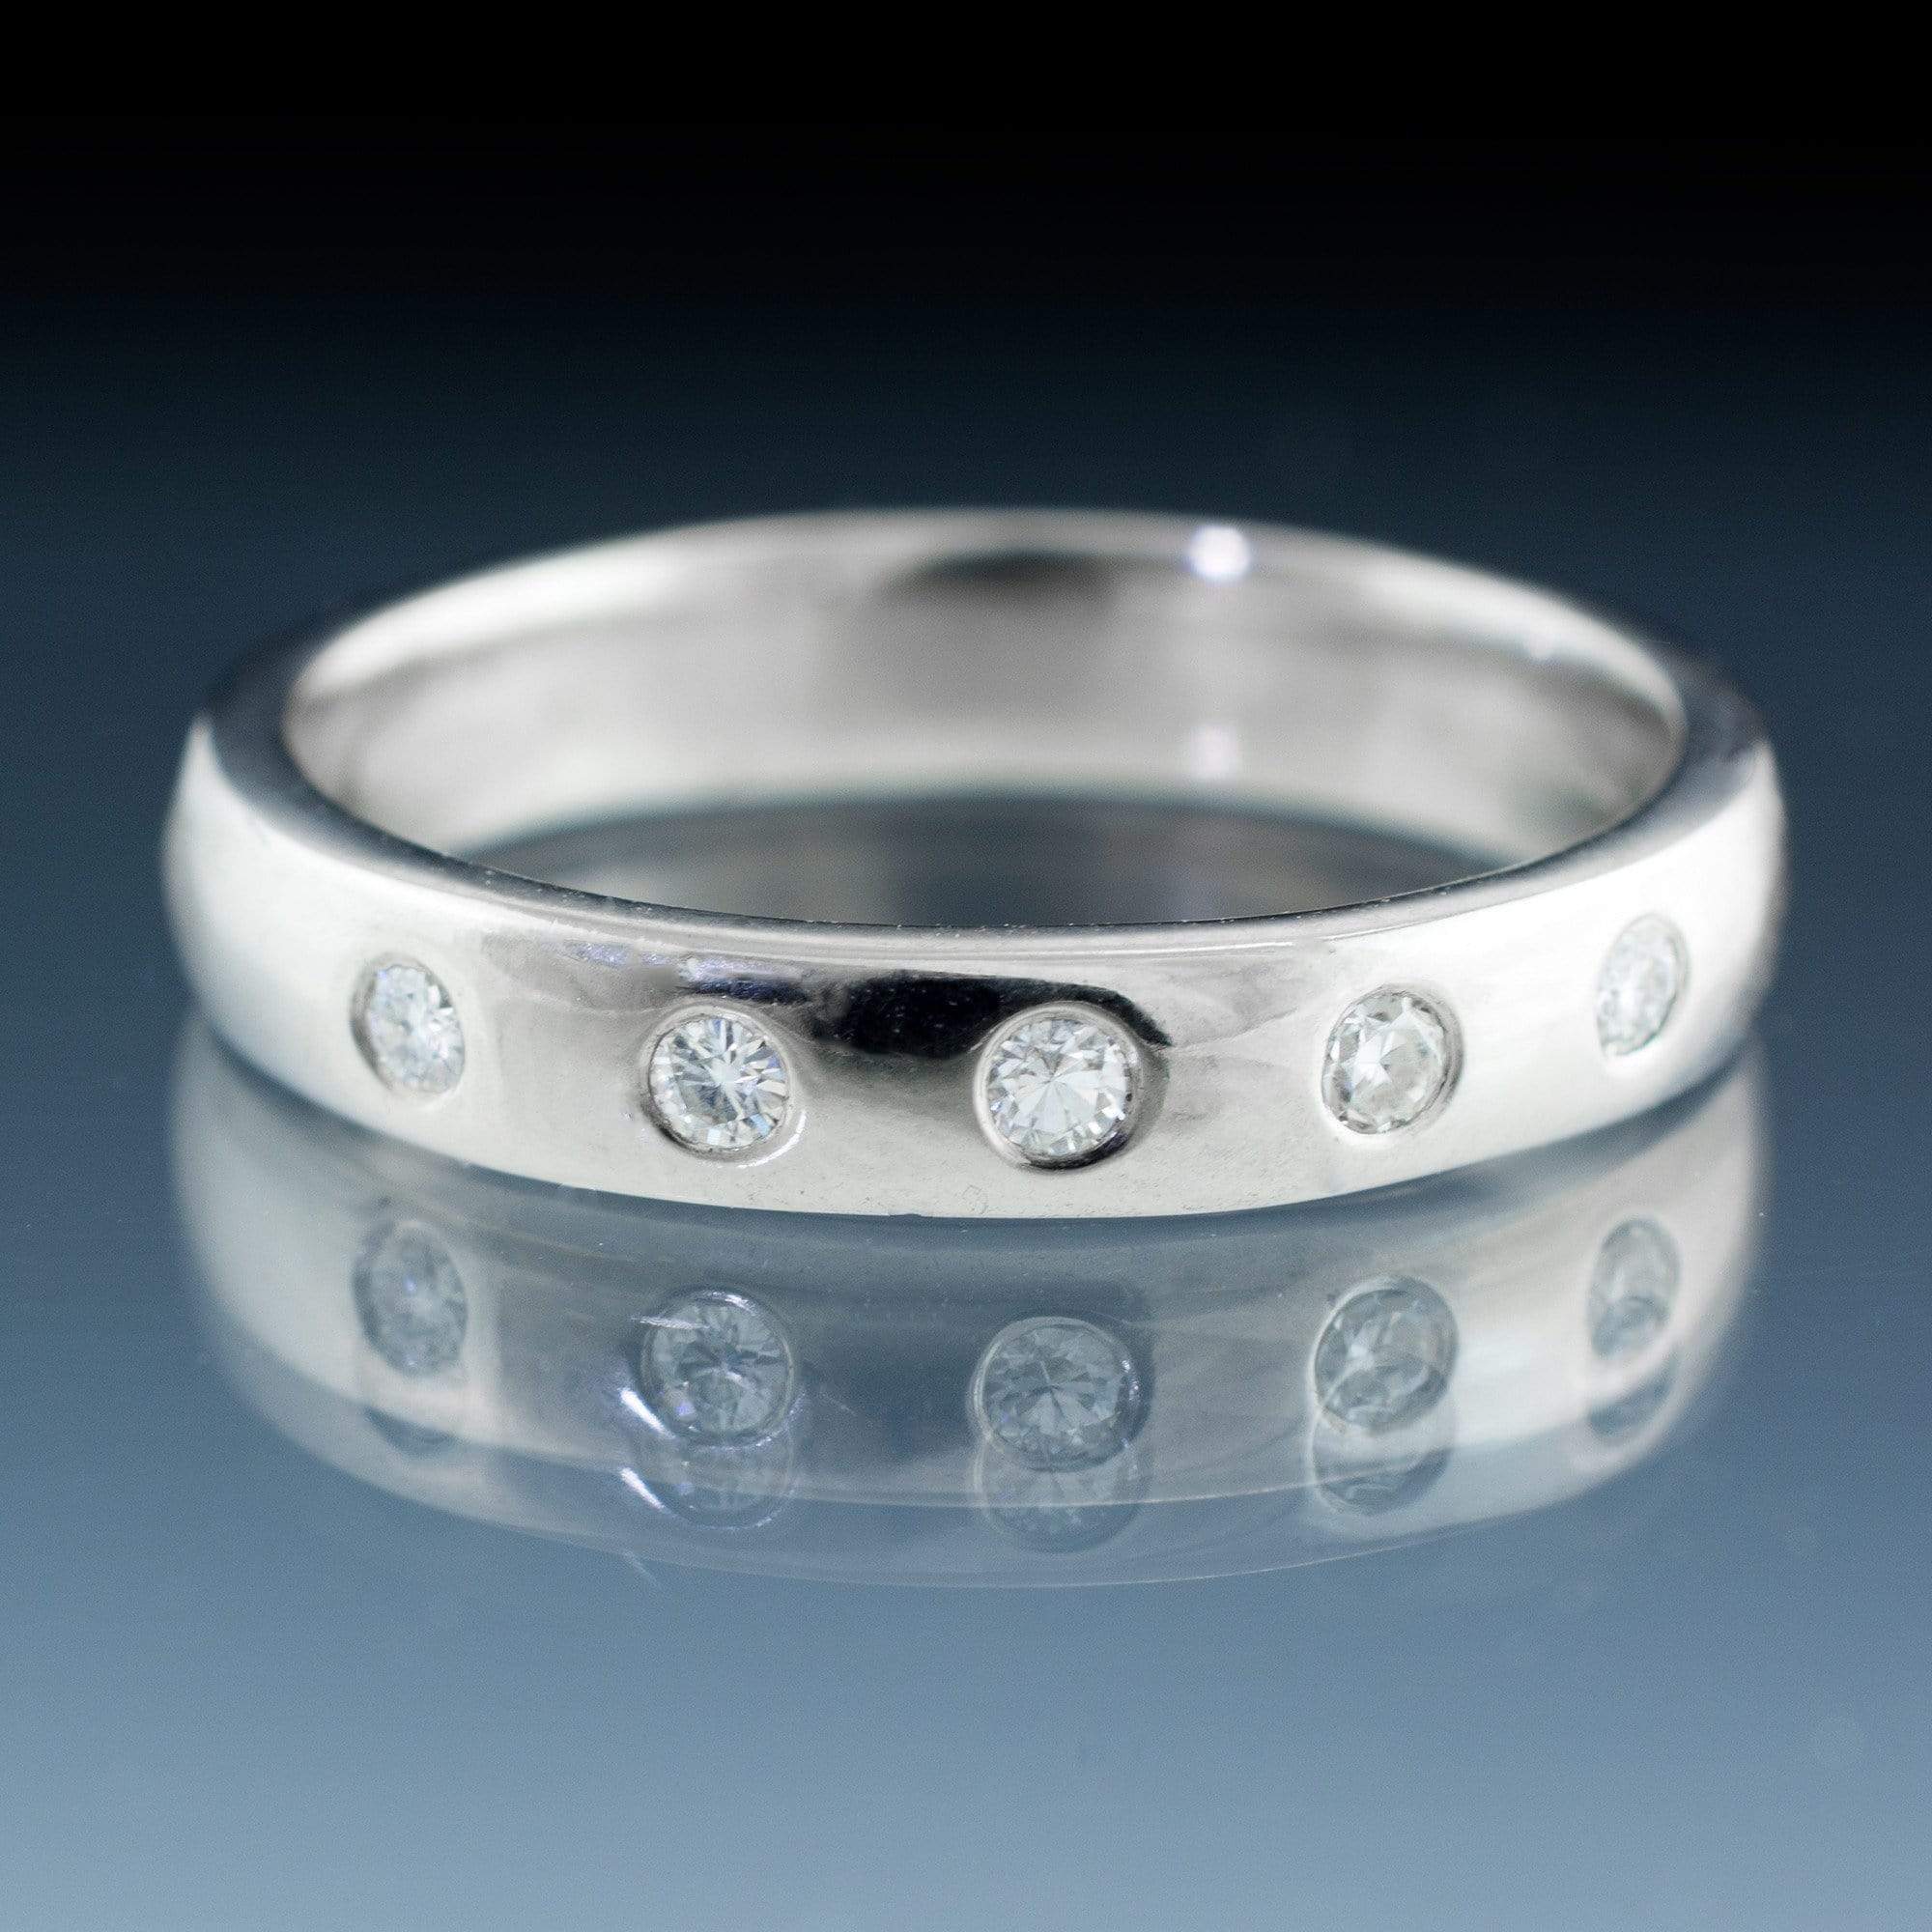 Narrow 5 Moissanite Wedding Ring - by Nodeform